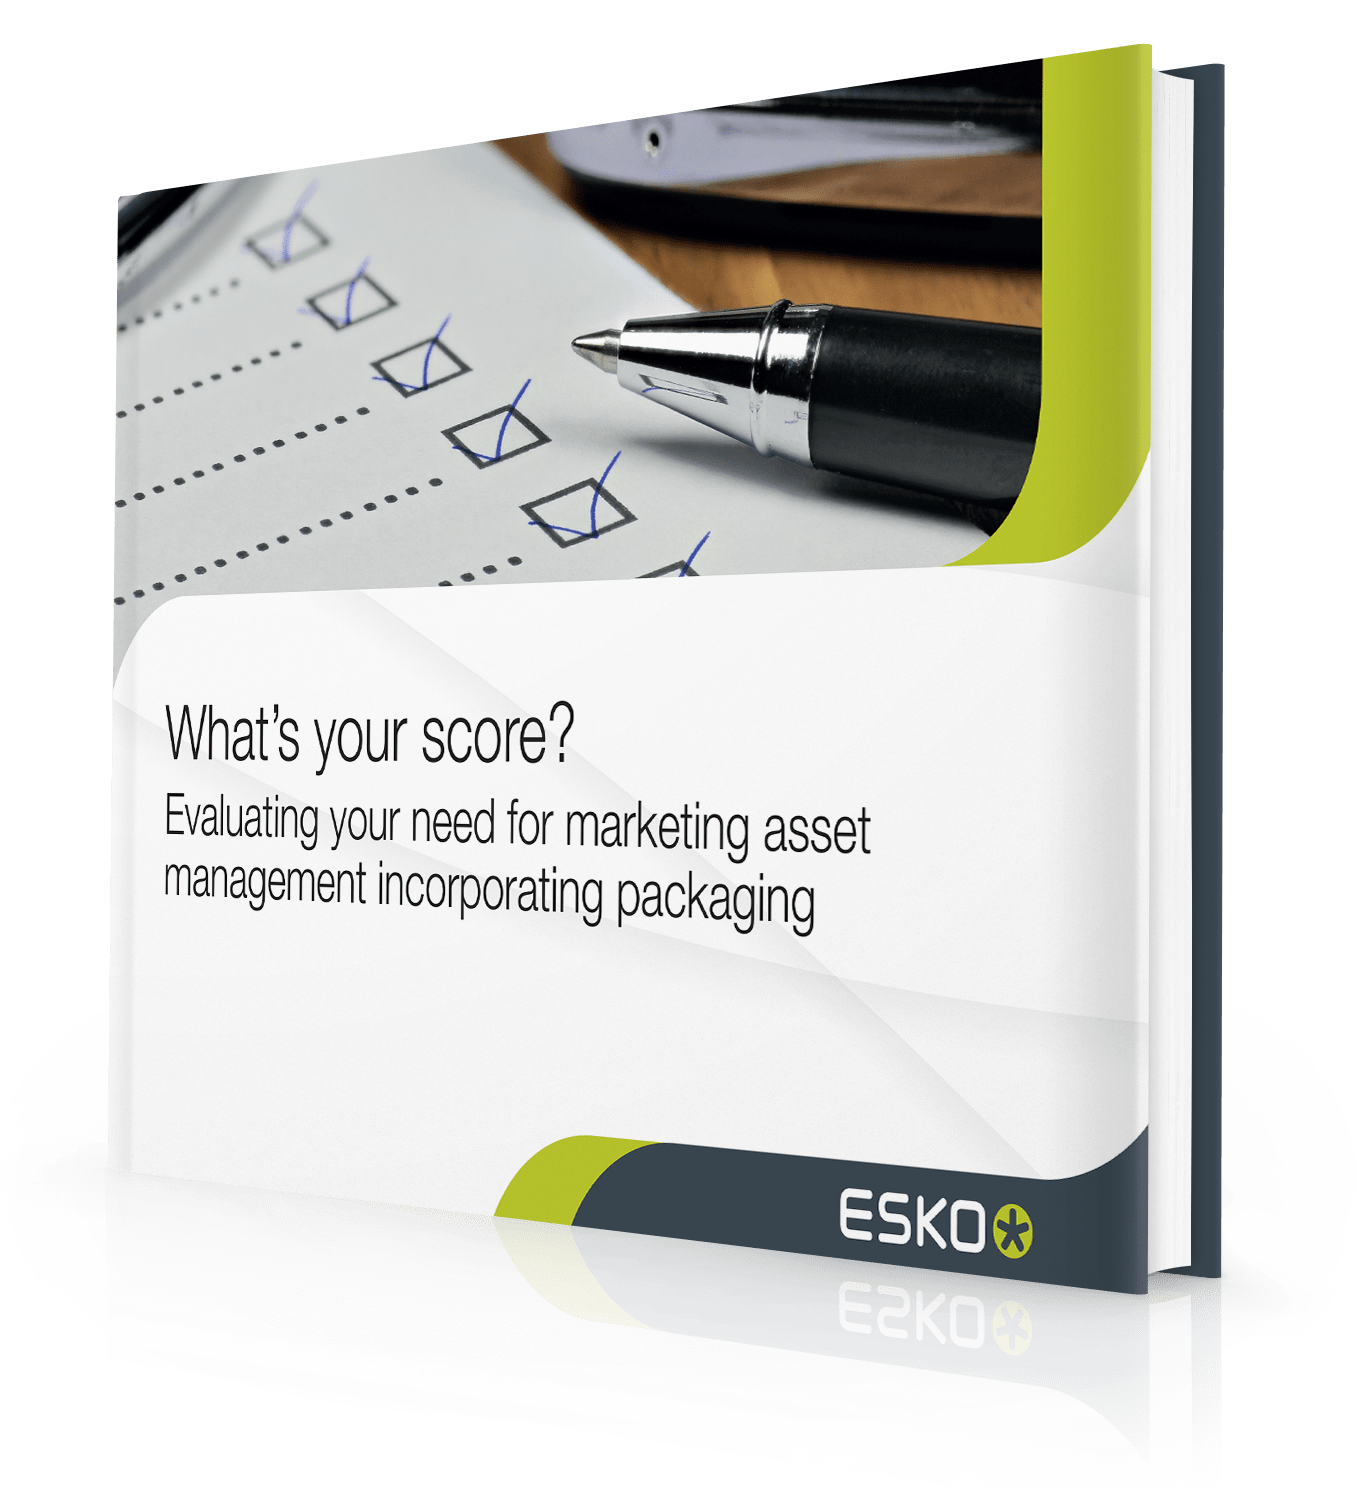 Evaluating your need for marketing asset management incorporating packaging